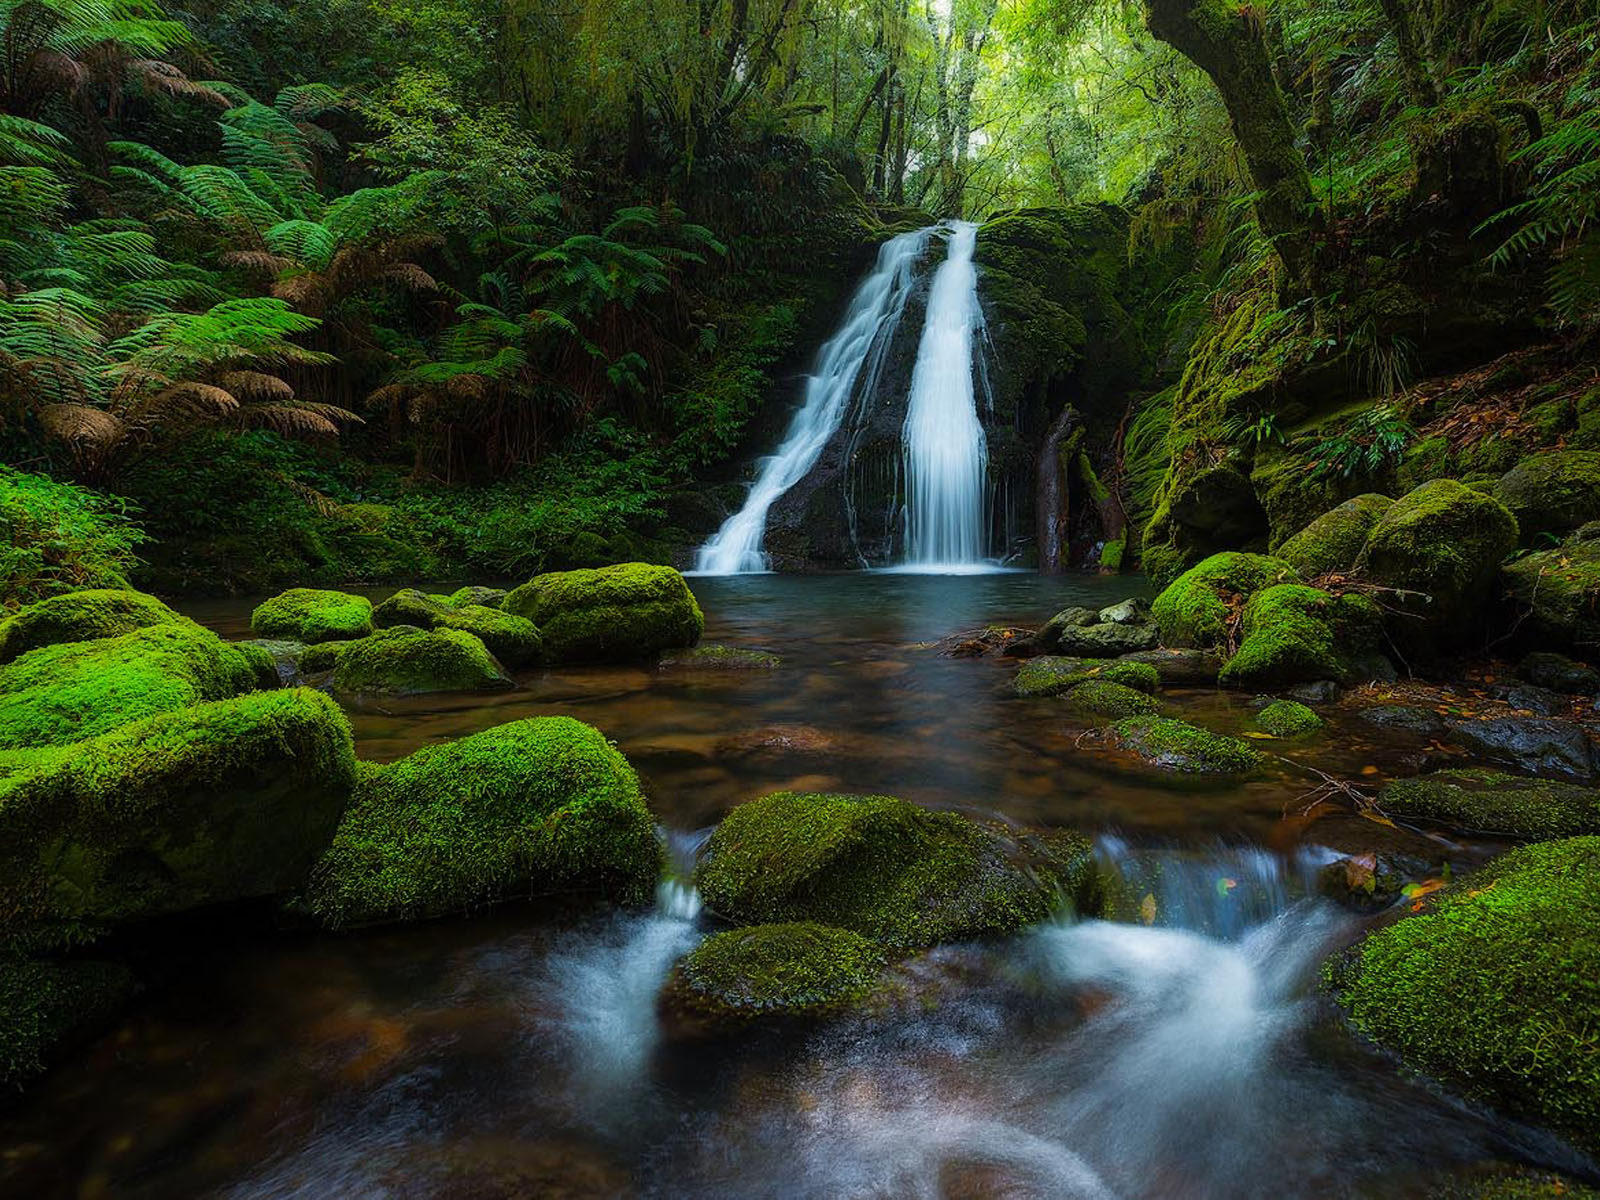 Disney Fall Desktop Wallpaper New England National Park Australia Rainforest Waterfall